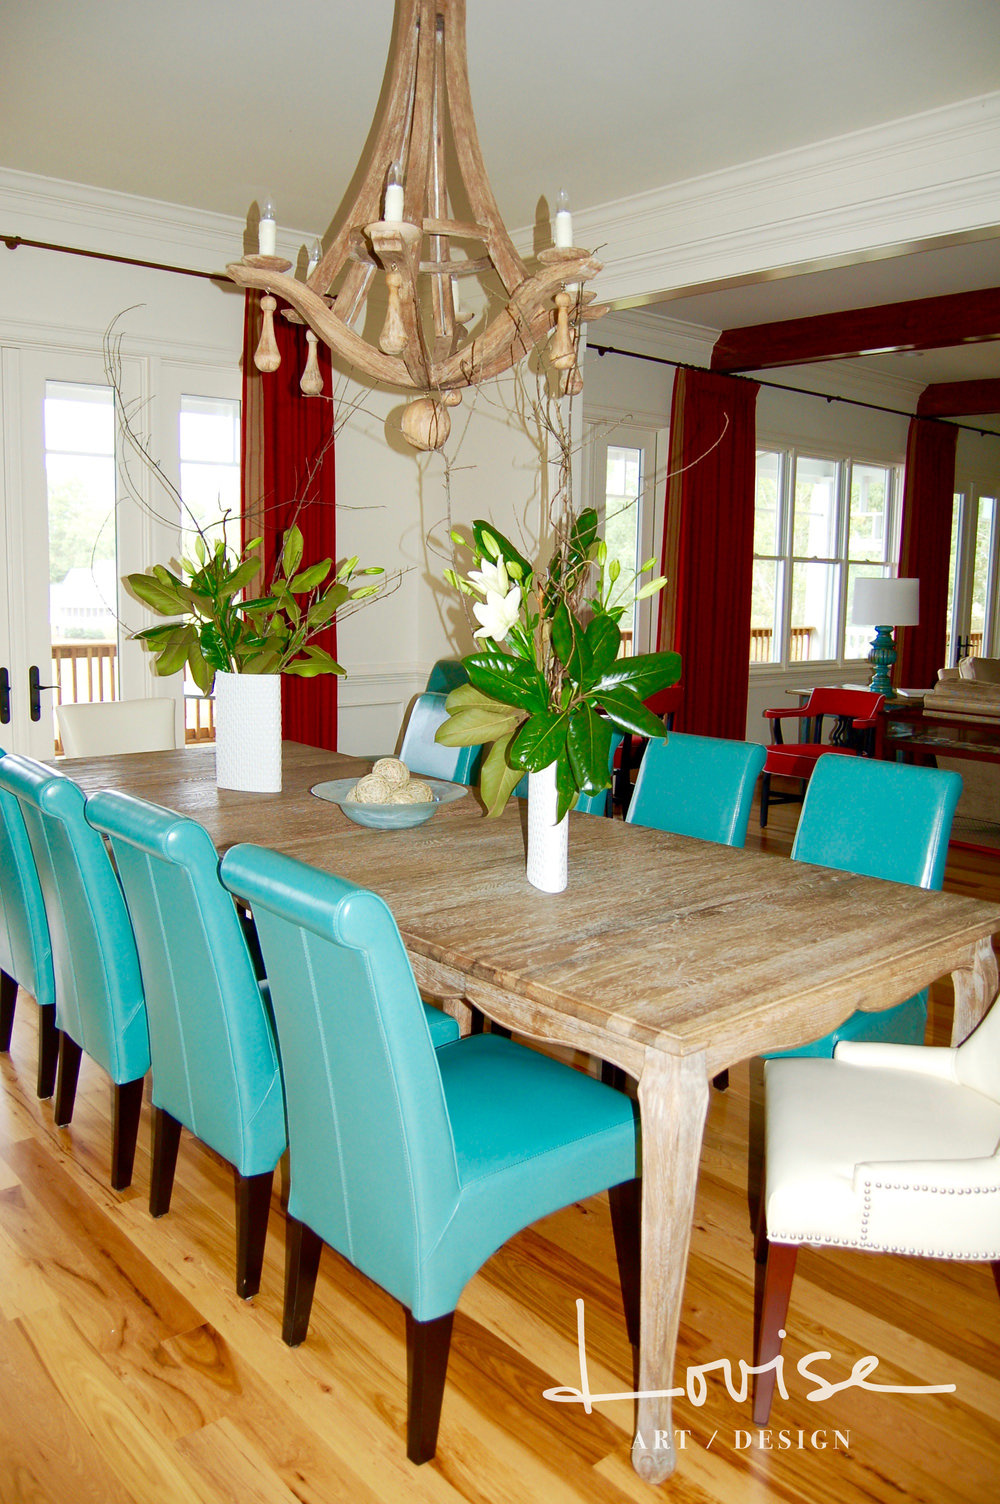 Casual dining table with turquoise leather chairs and wood chandelier